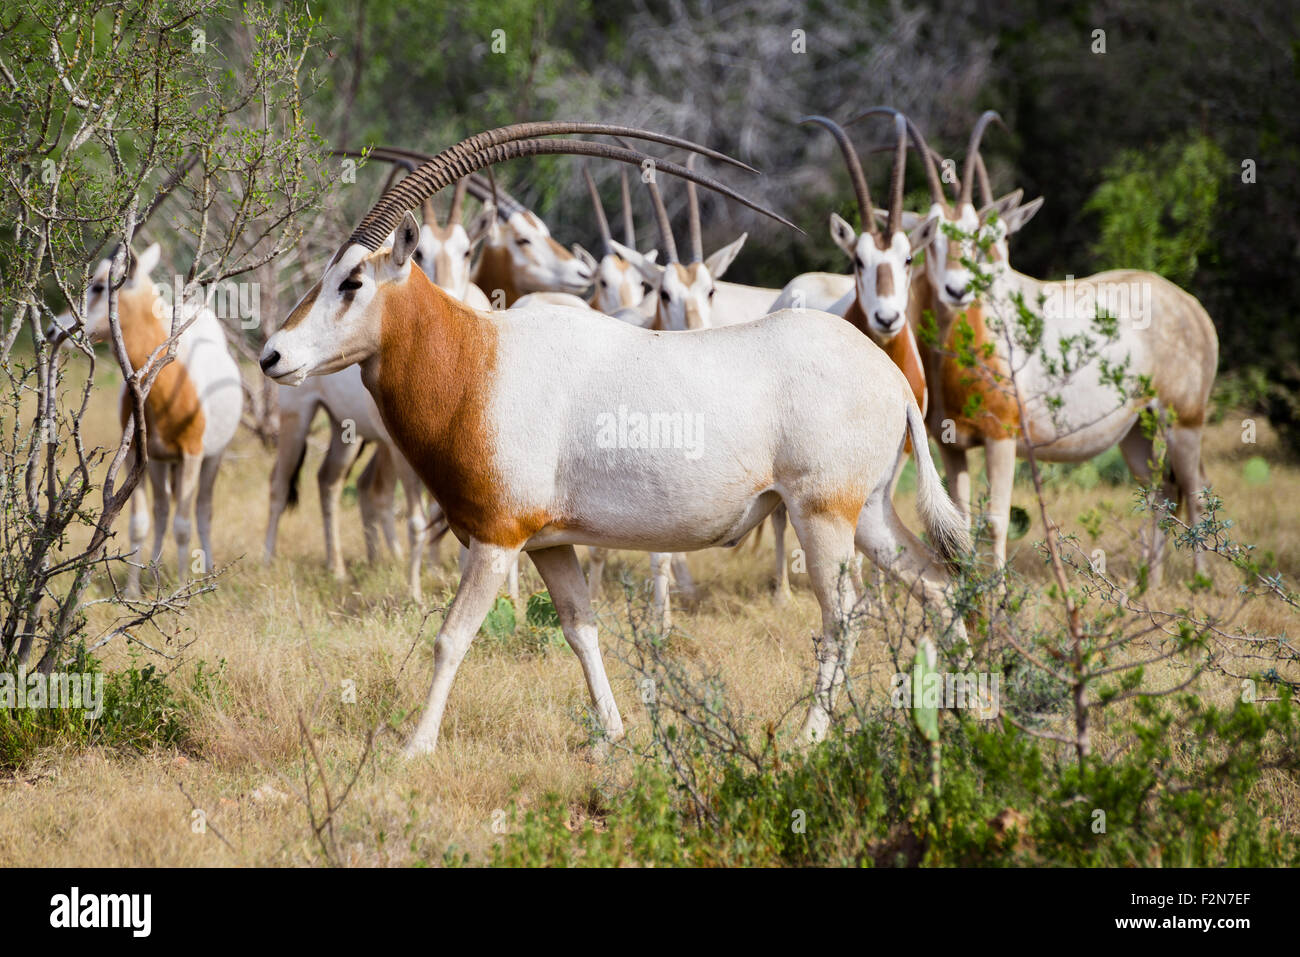 Wild Scimitar Horned Oryx Bull walking to the left in front of the herd. These animals are extinct in their native - Stock Image